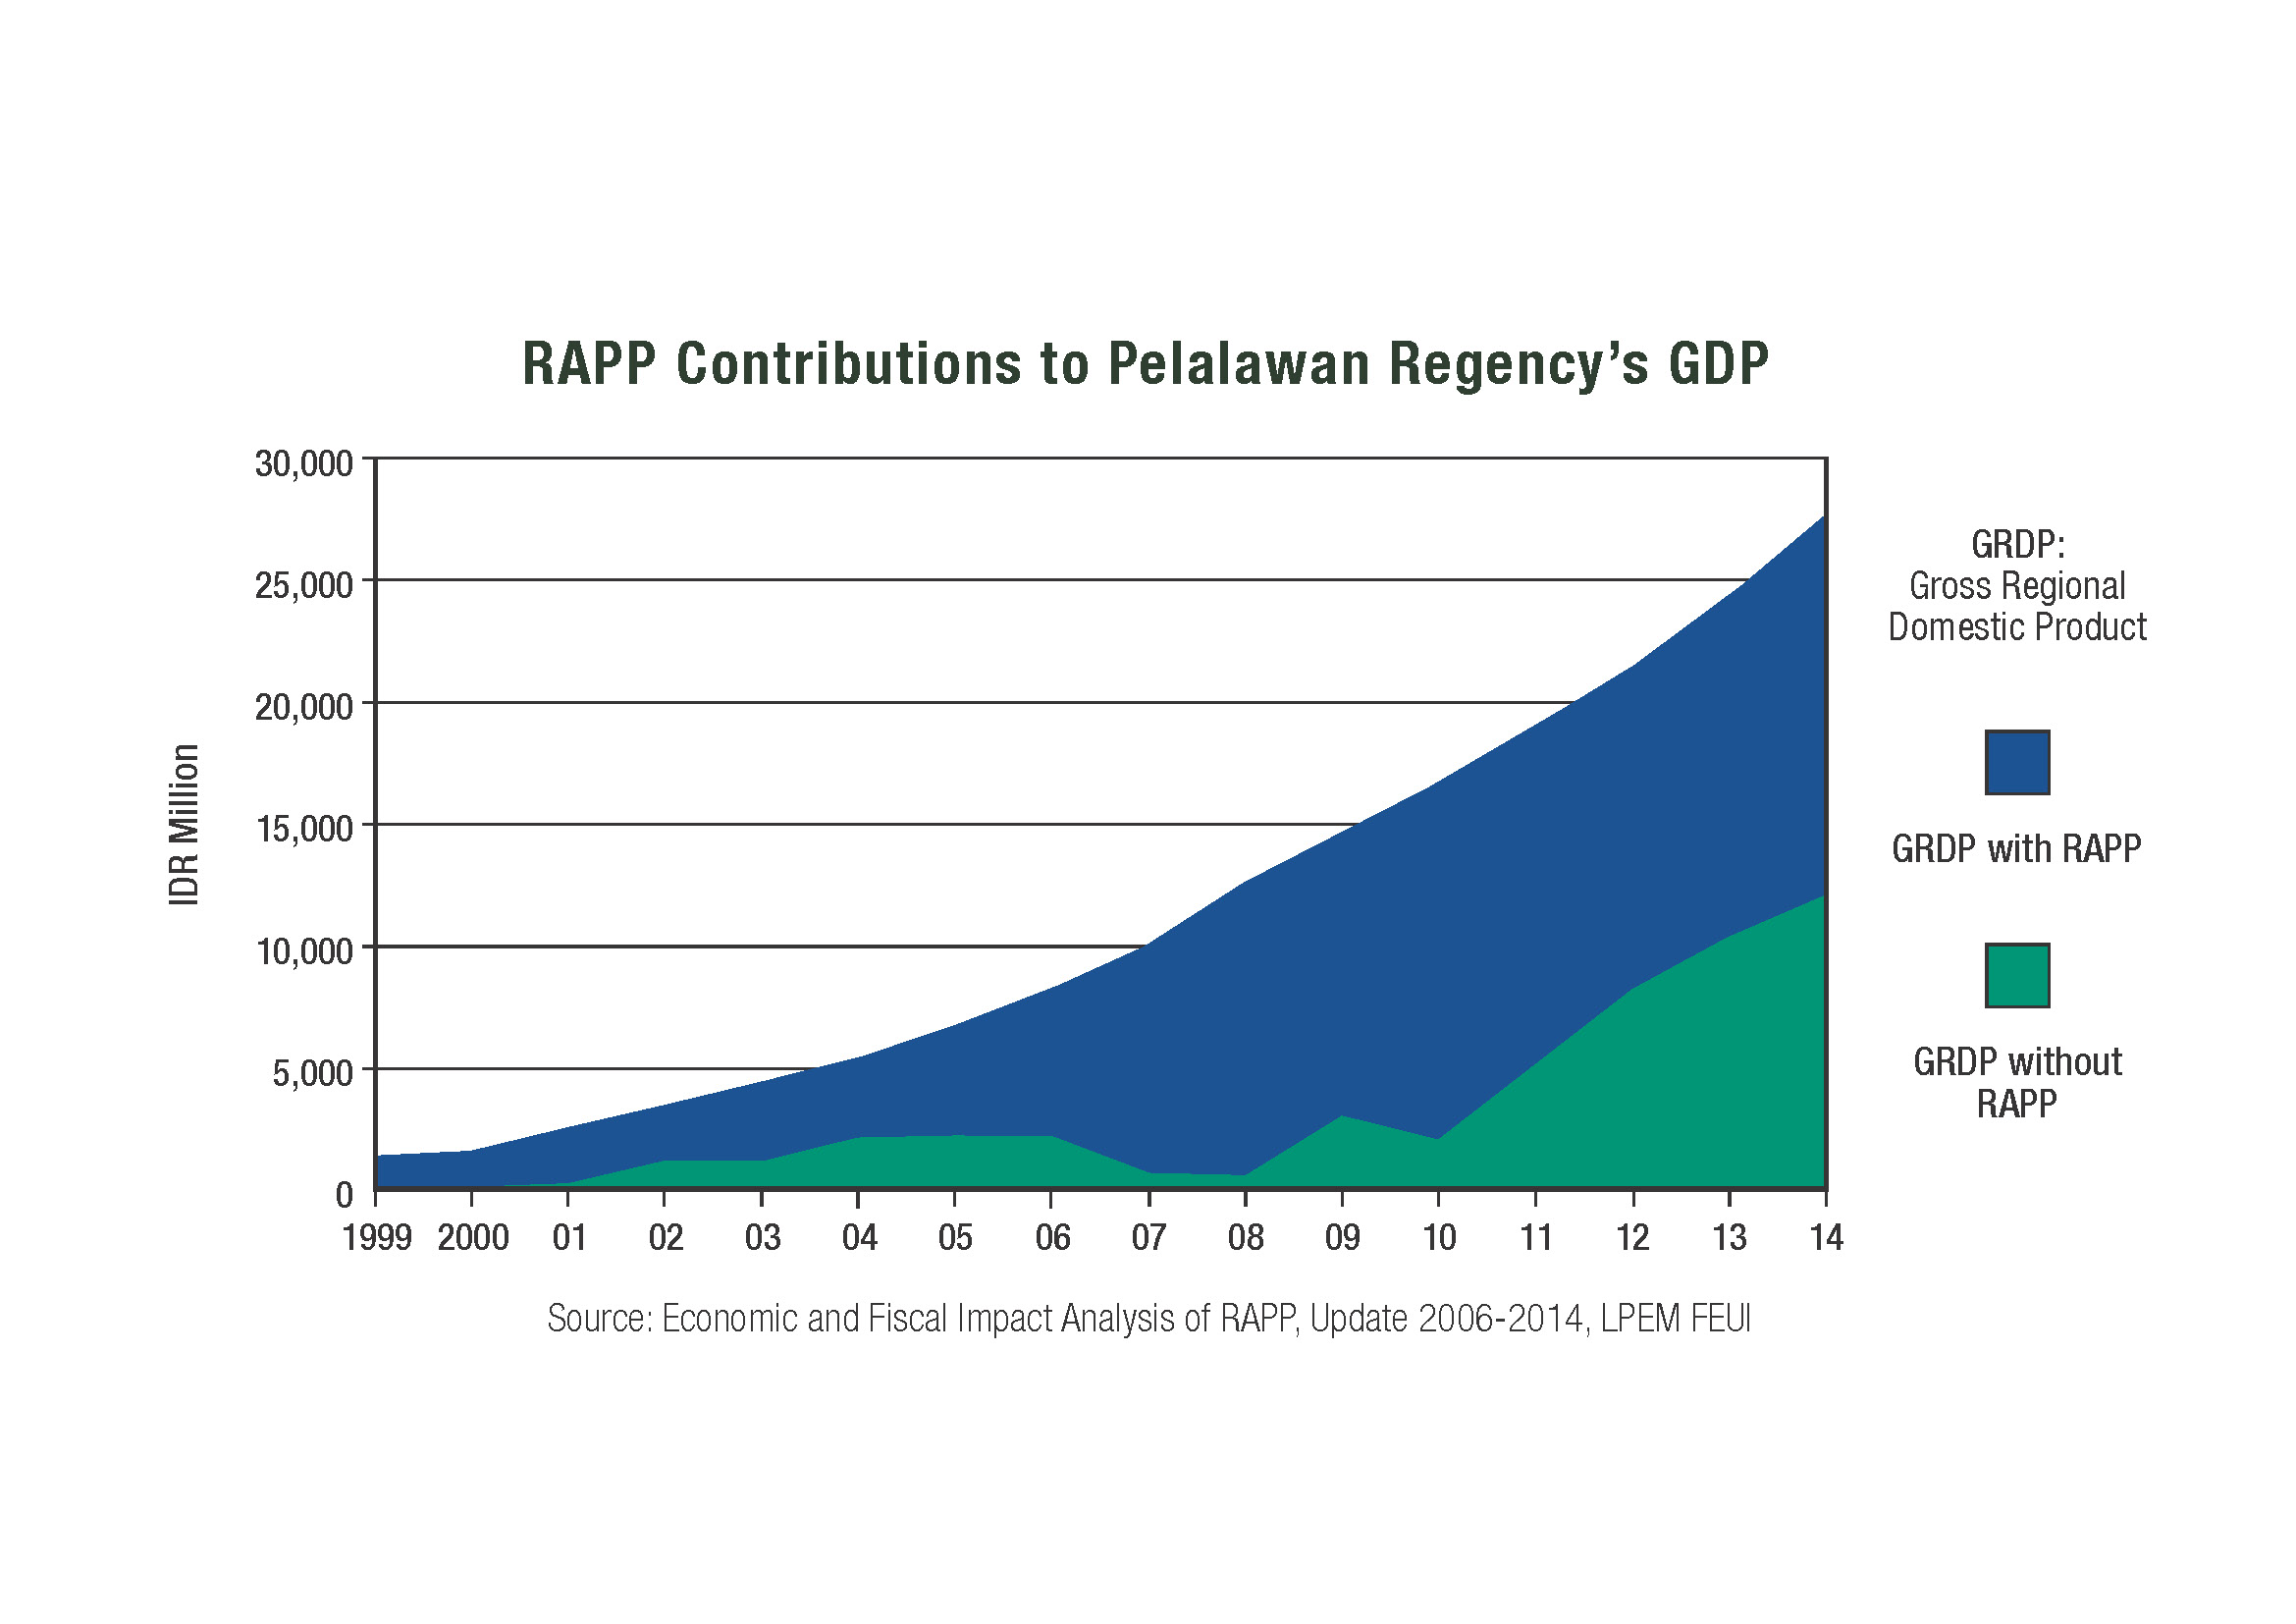 Rapp Contribution to GRDP